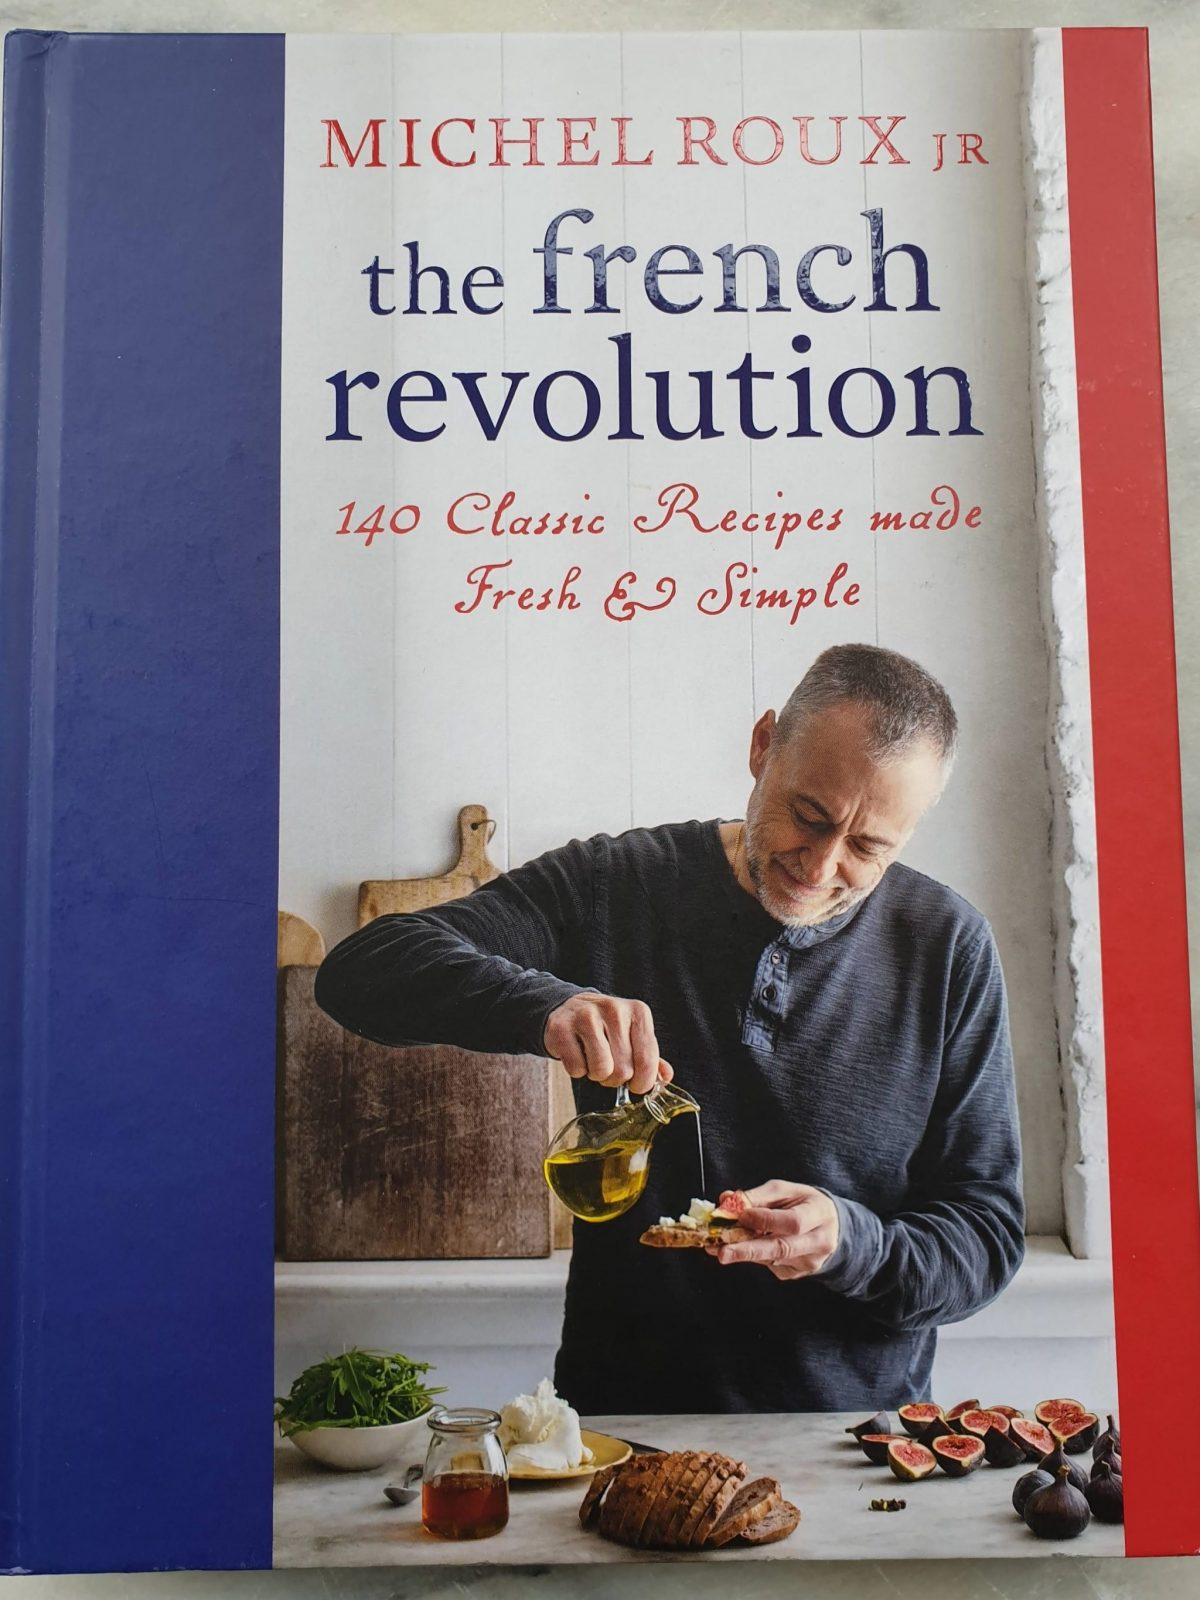 Michel Roux The French Revolution